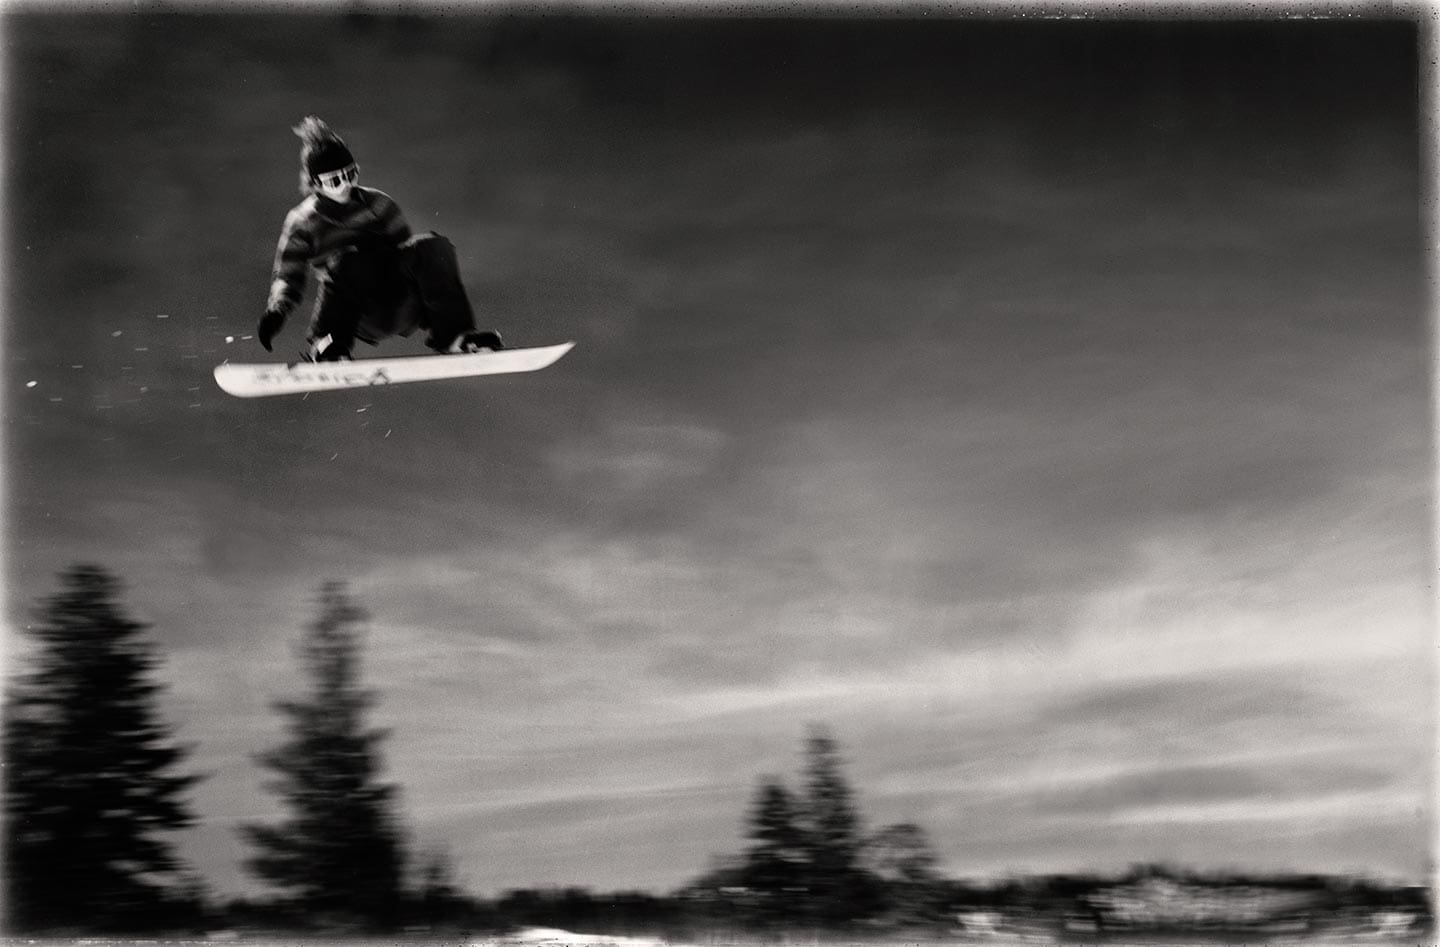 Rod Mclean - snowboarder in the sky